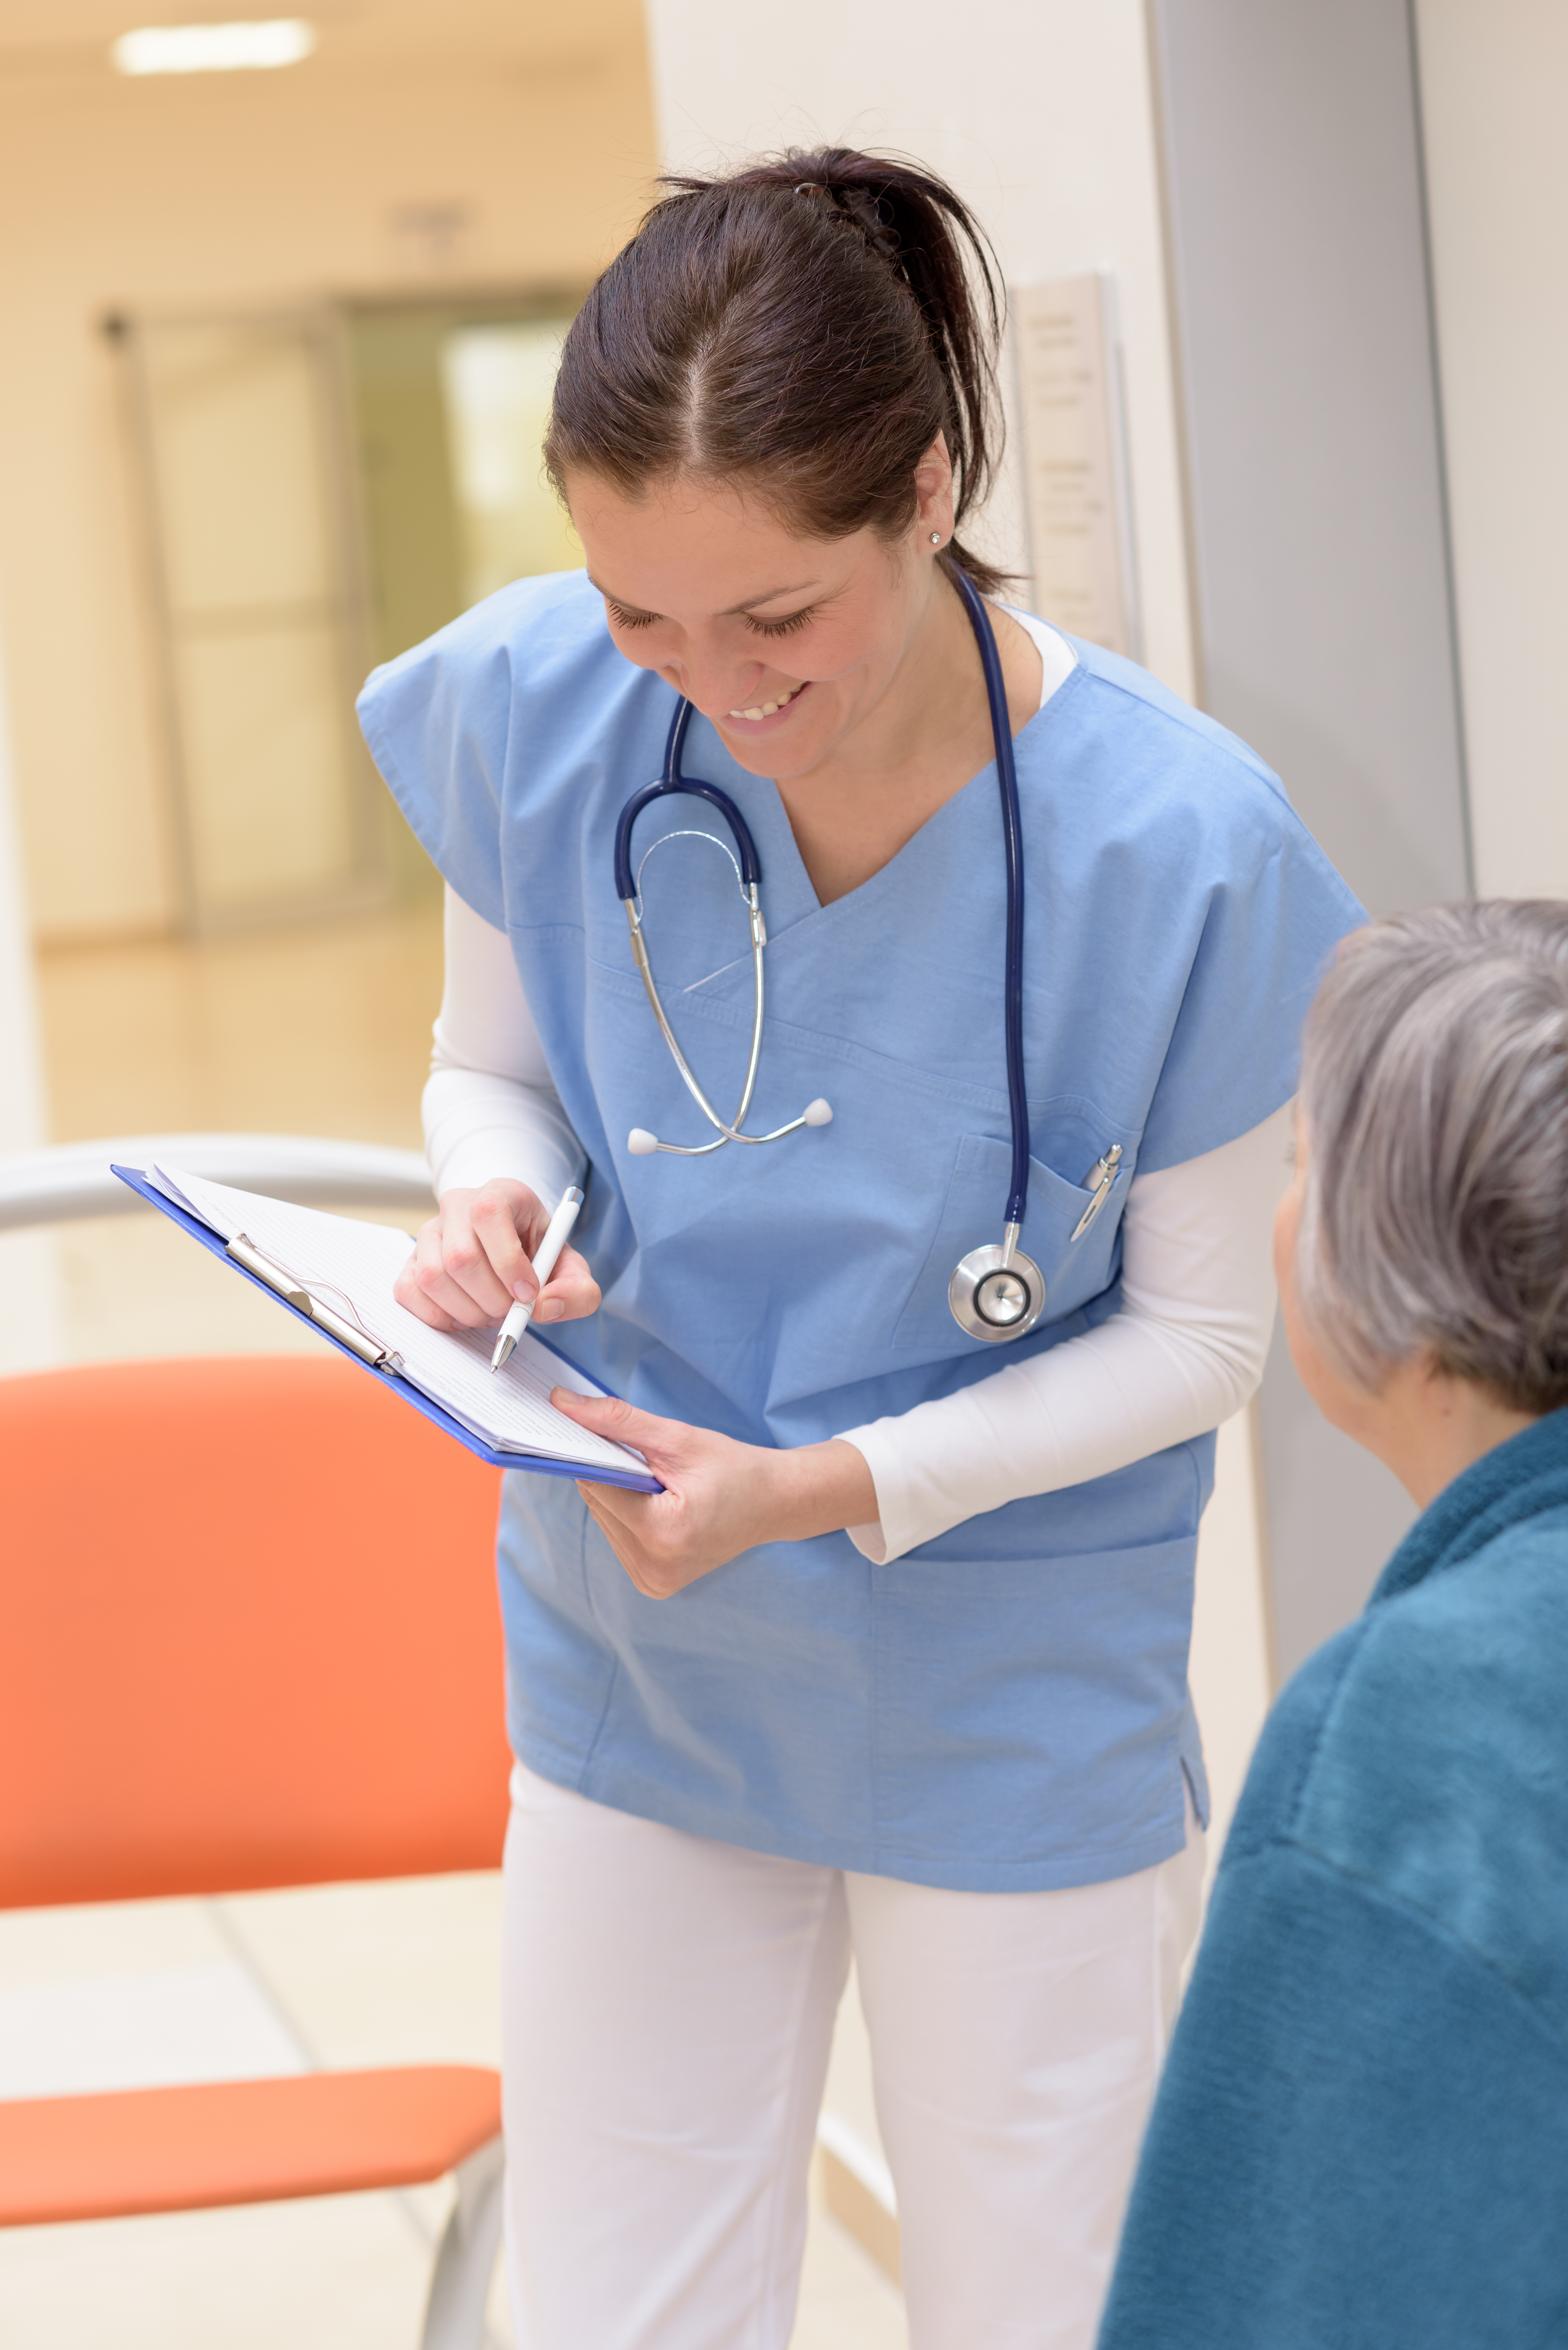 MEDICATION ASSISTANTS AS ALTERNATIVE TO NURSE STAFFING SHORTAGE IN NURSING HOMES